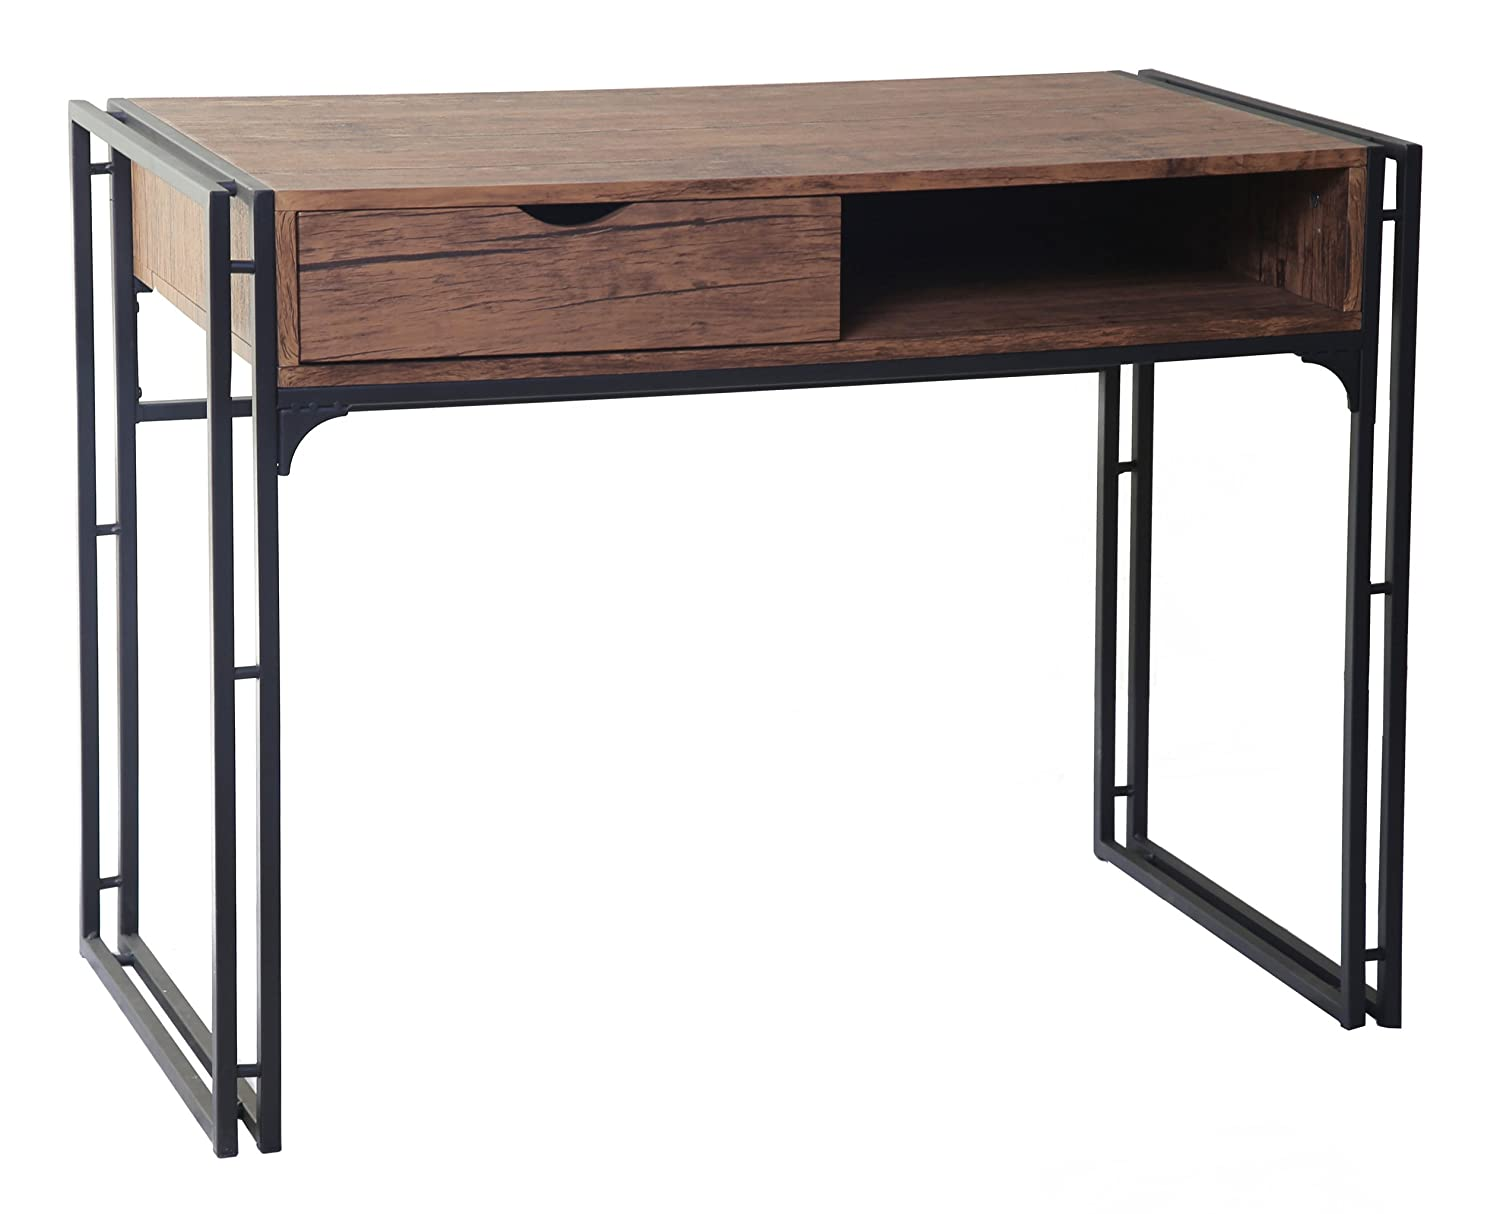 Ts ideen bureau design table console table de travail bureau